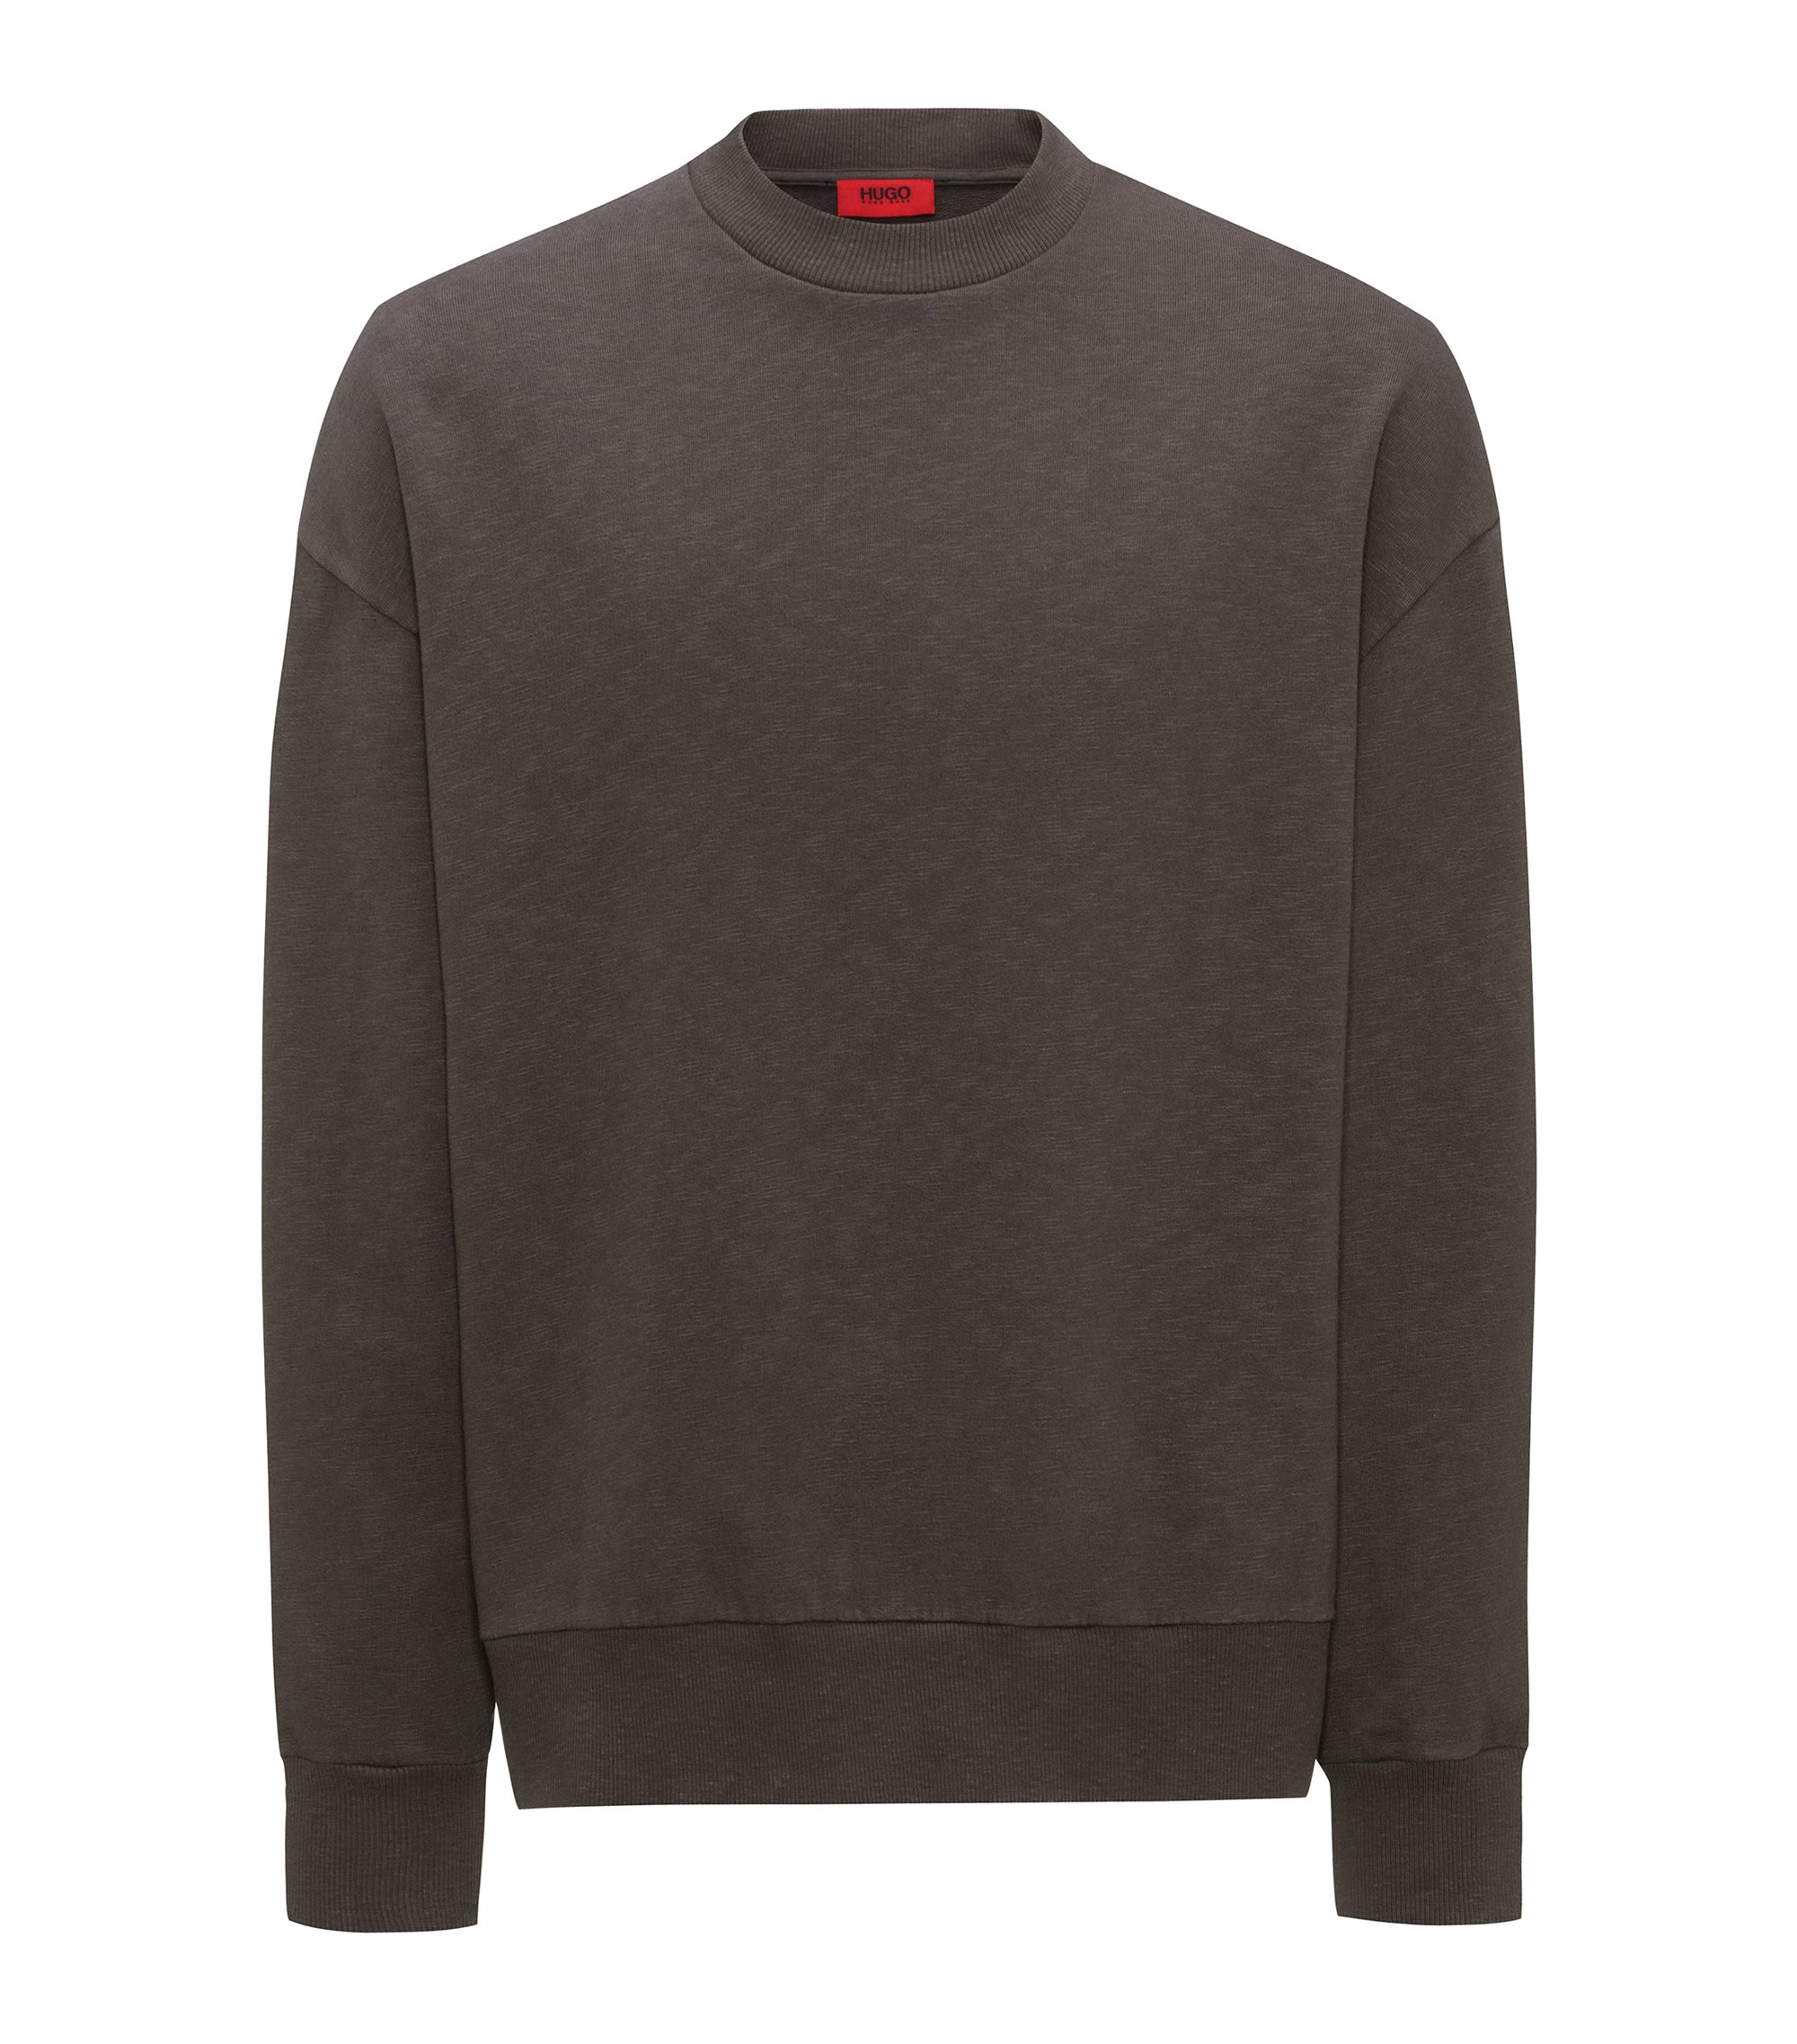 Oversized-Fit Sweatshirt aus strukturiertem French Terry, Braun